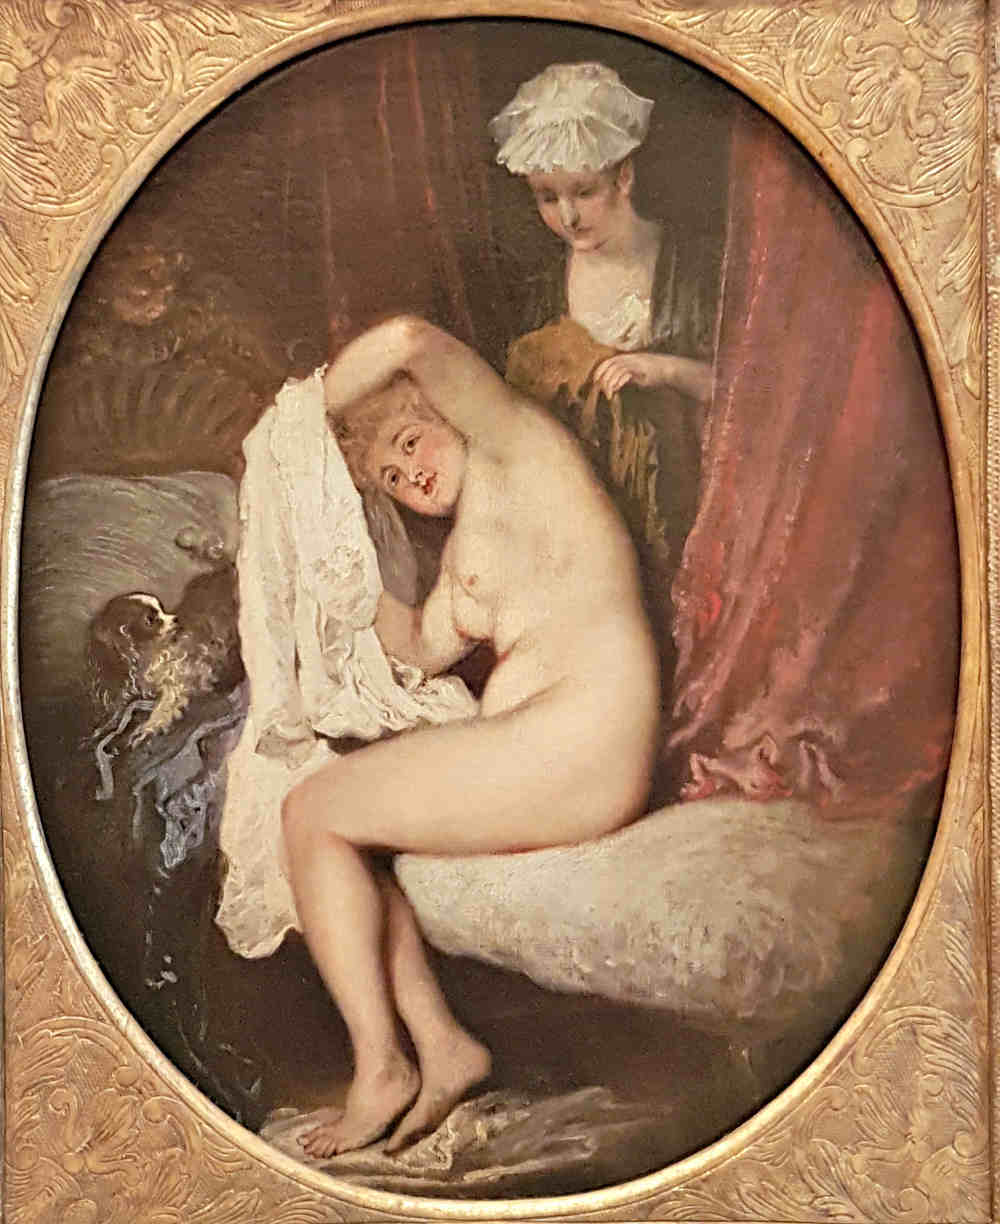 Erotic London, Erotic Art London, Watteau, Lady at her Toilet, Wallace